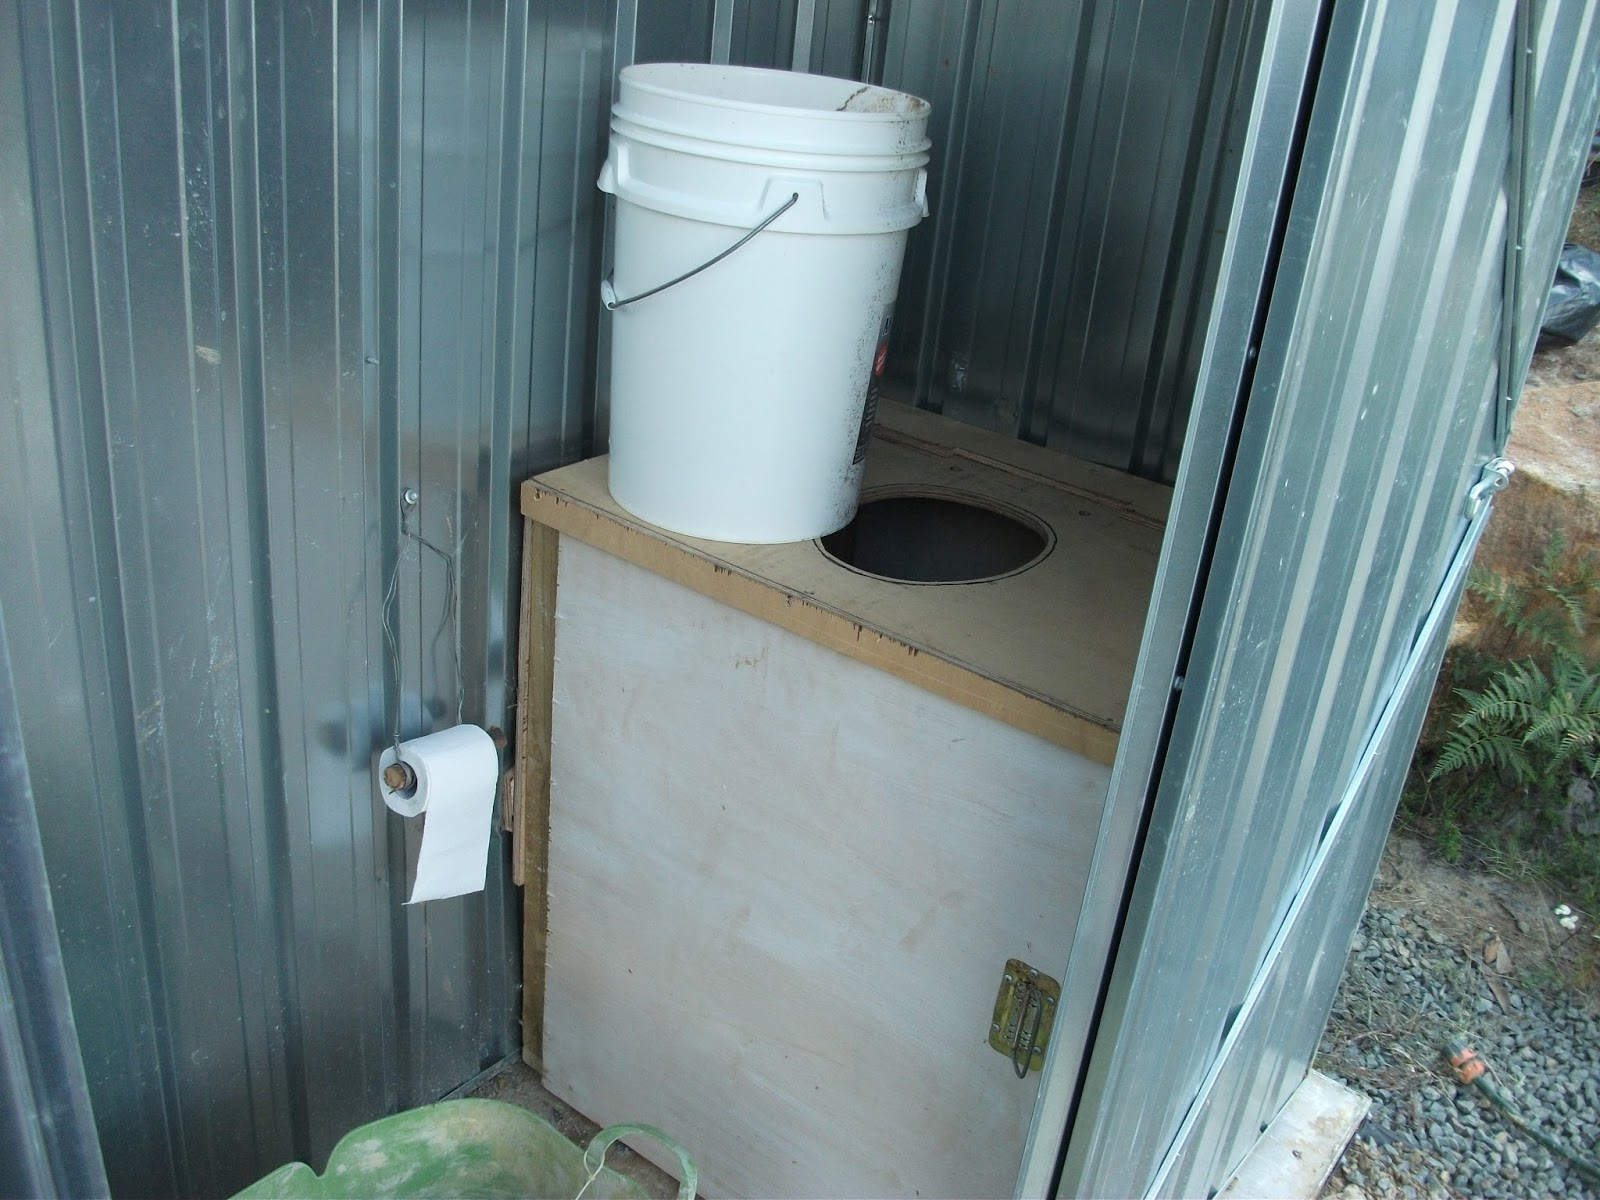 Dirty Deeds co.: Composting toilet systems